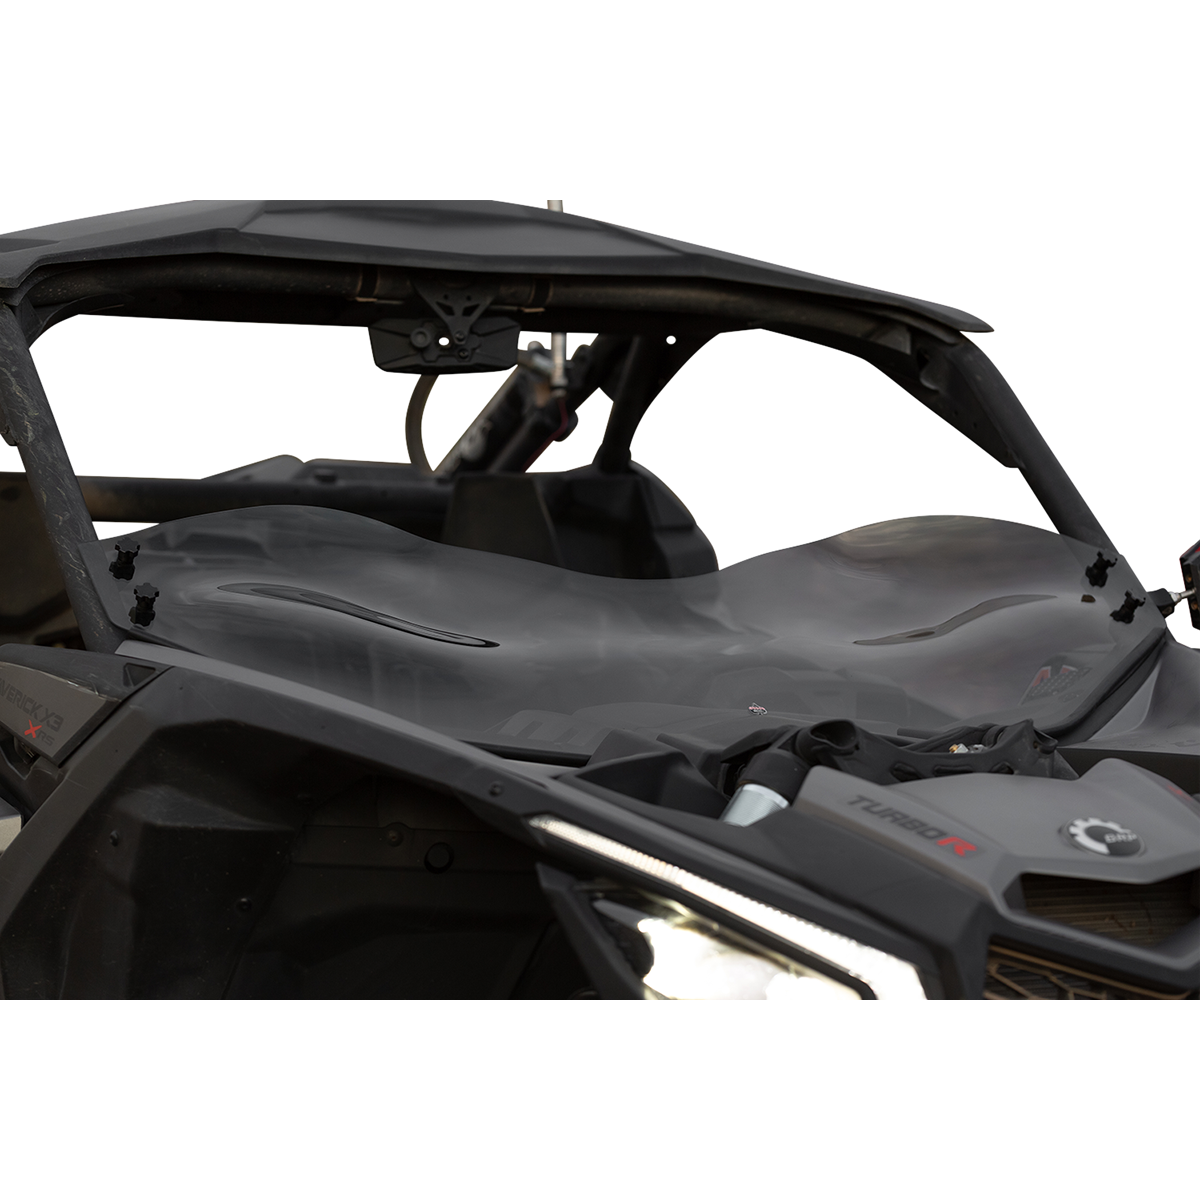 KLOCK WERKS Flare Windshield - Tint - Can-Am KW05-01-0471-T